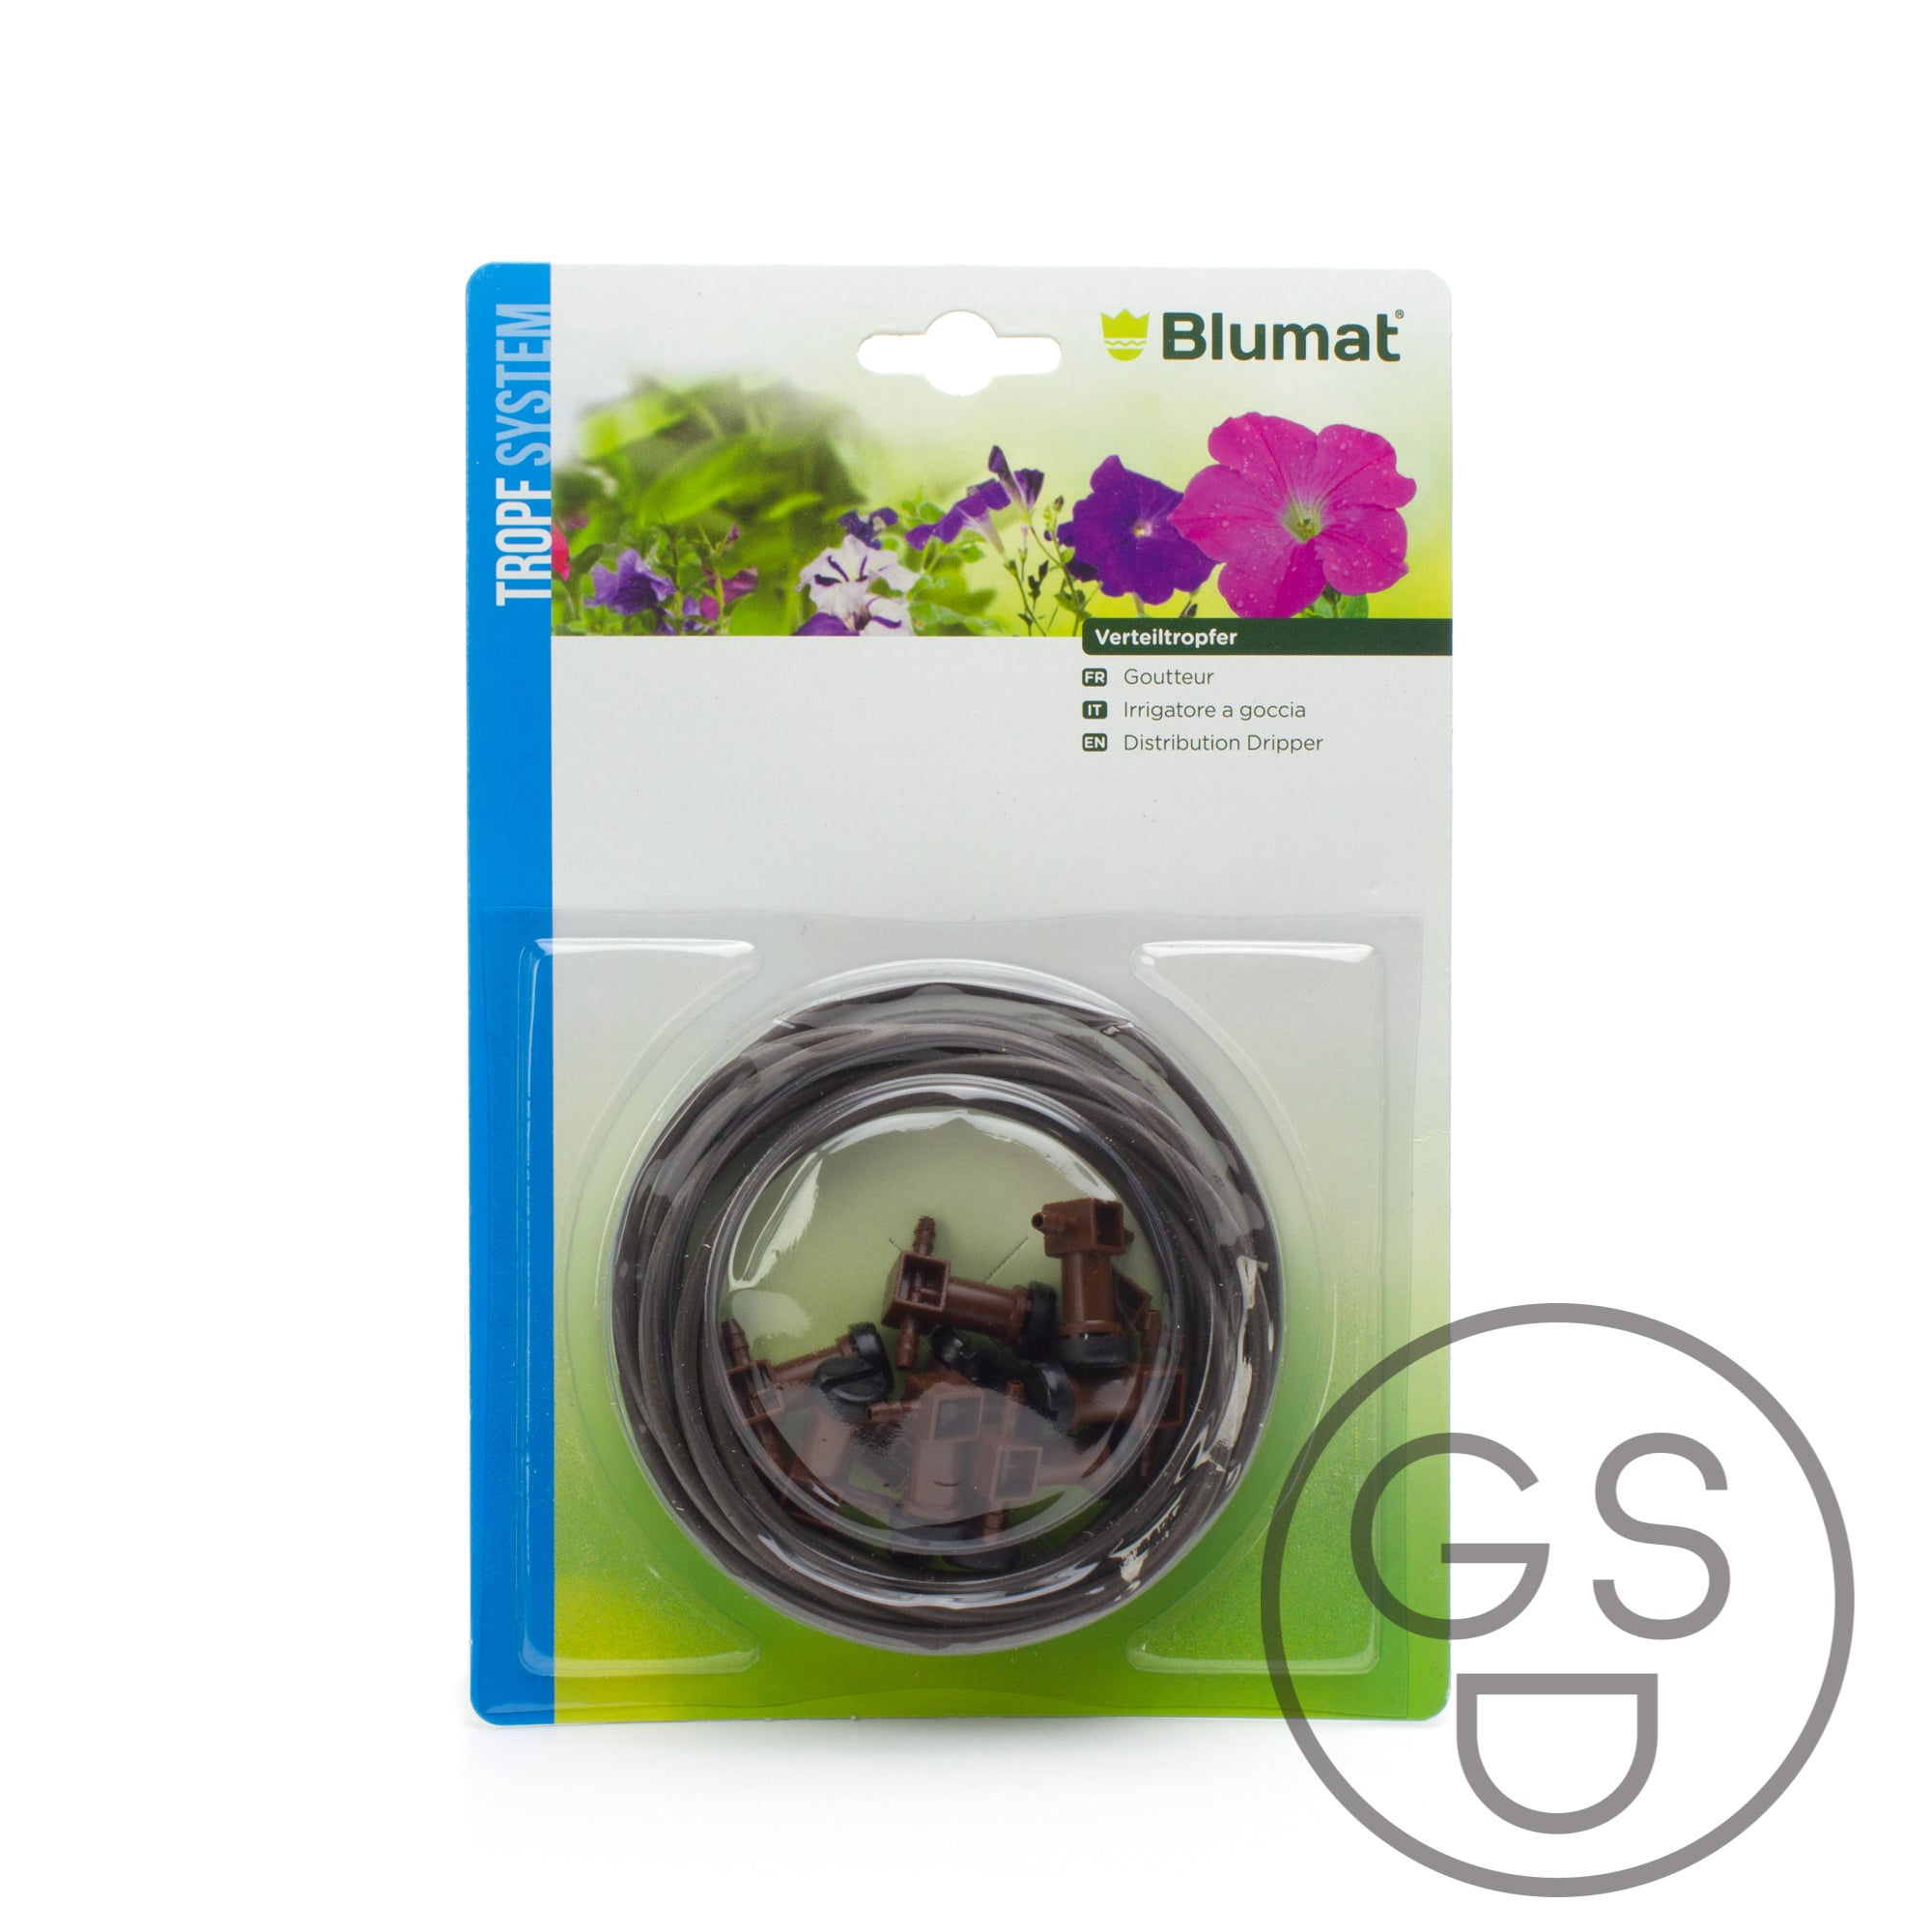 Tropf Blumat Distribution Dripper Extension - 10 Dripper Pack